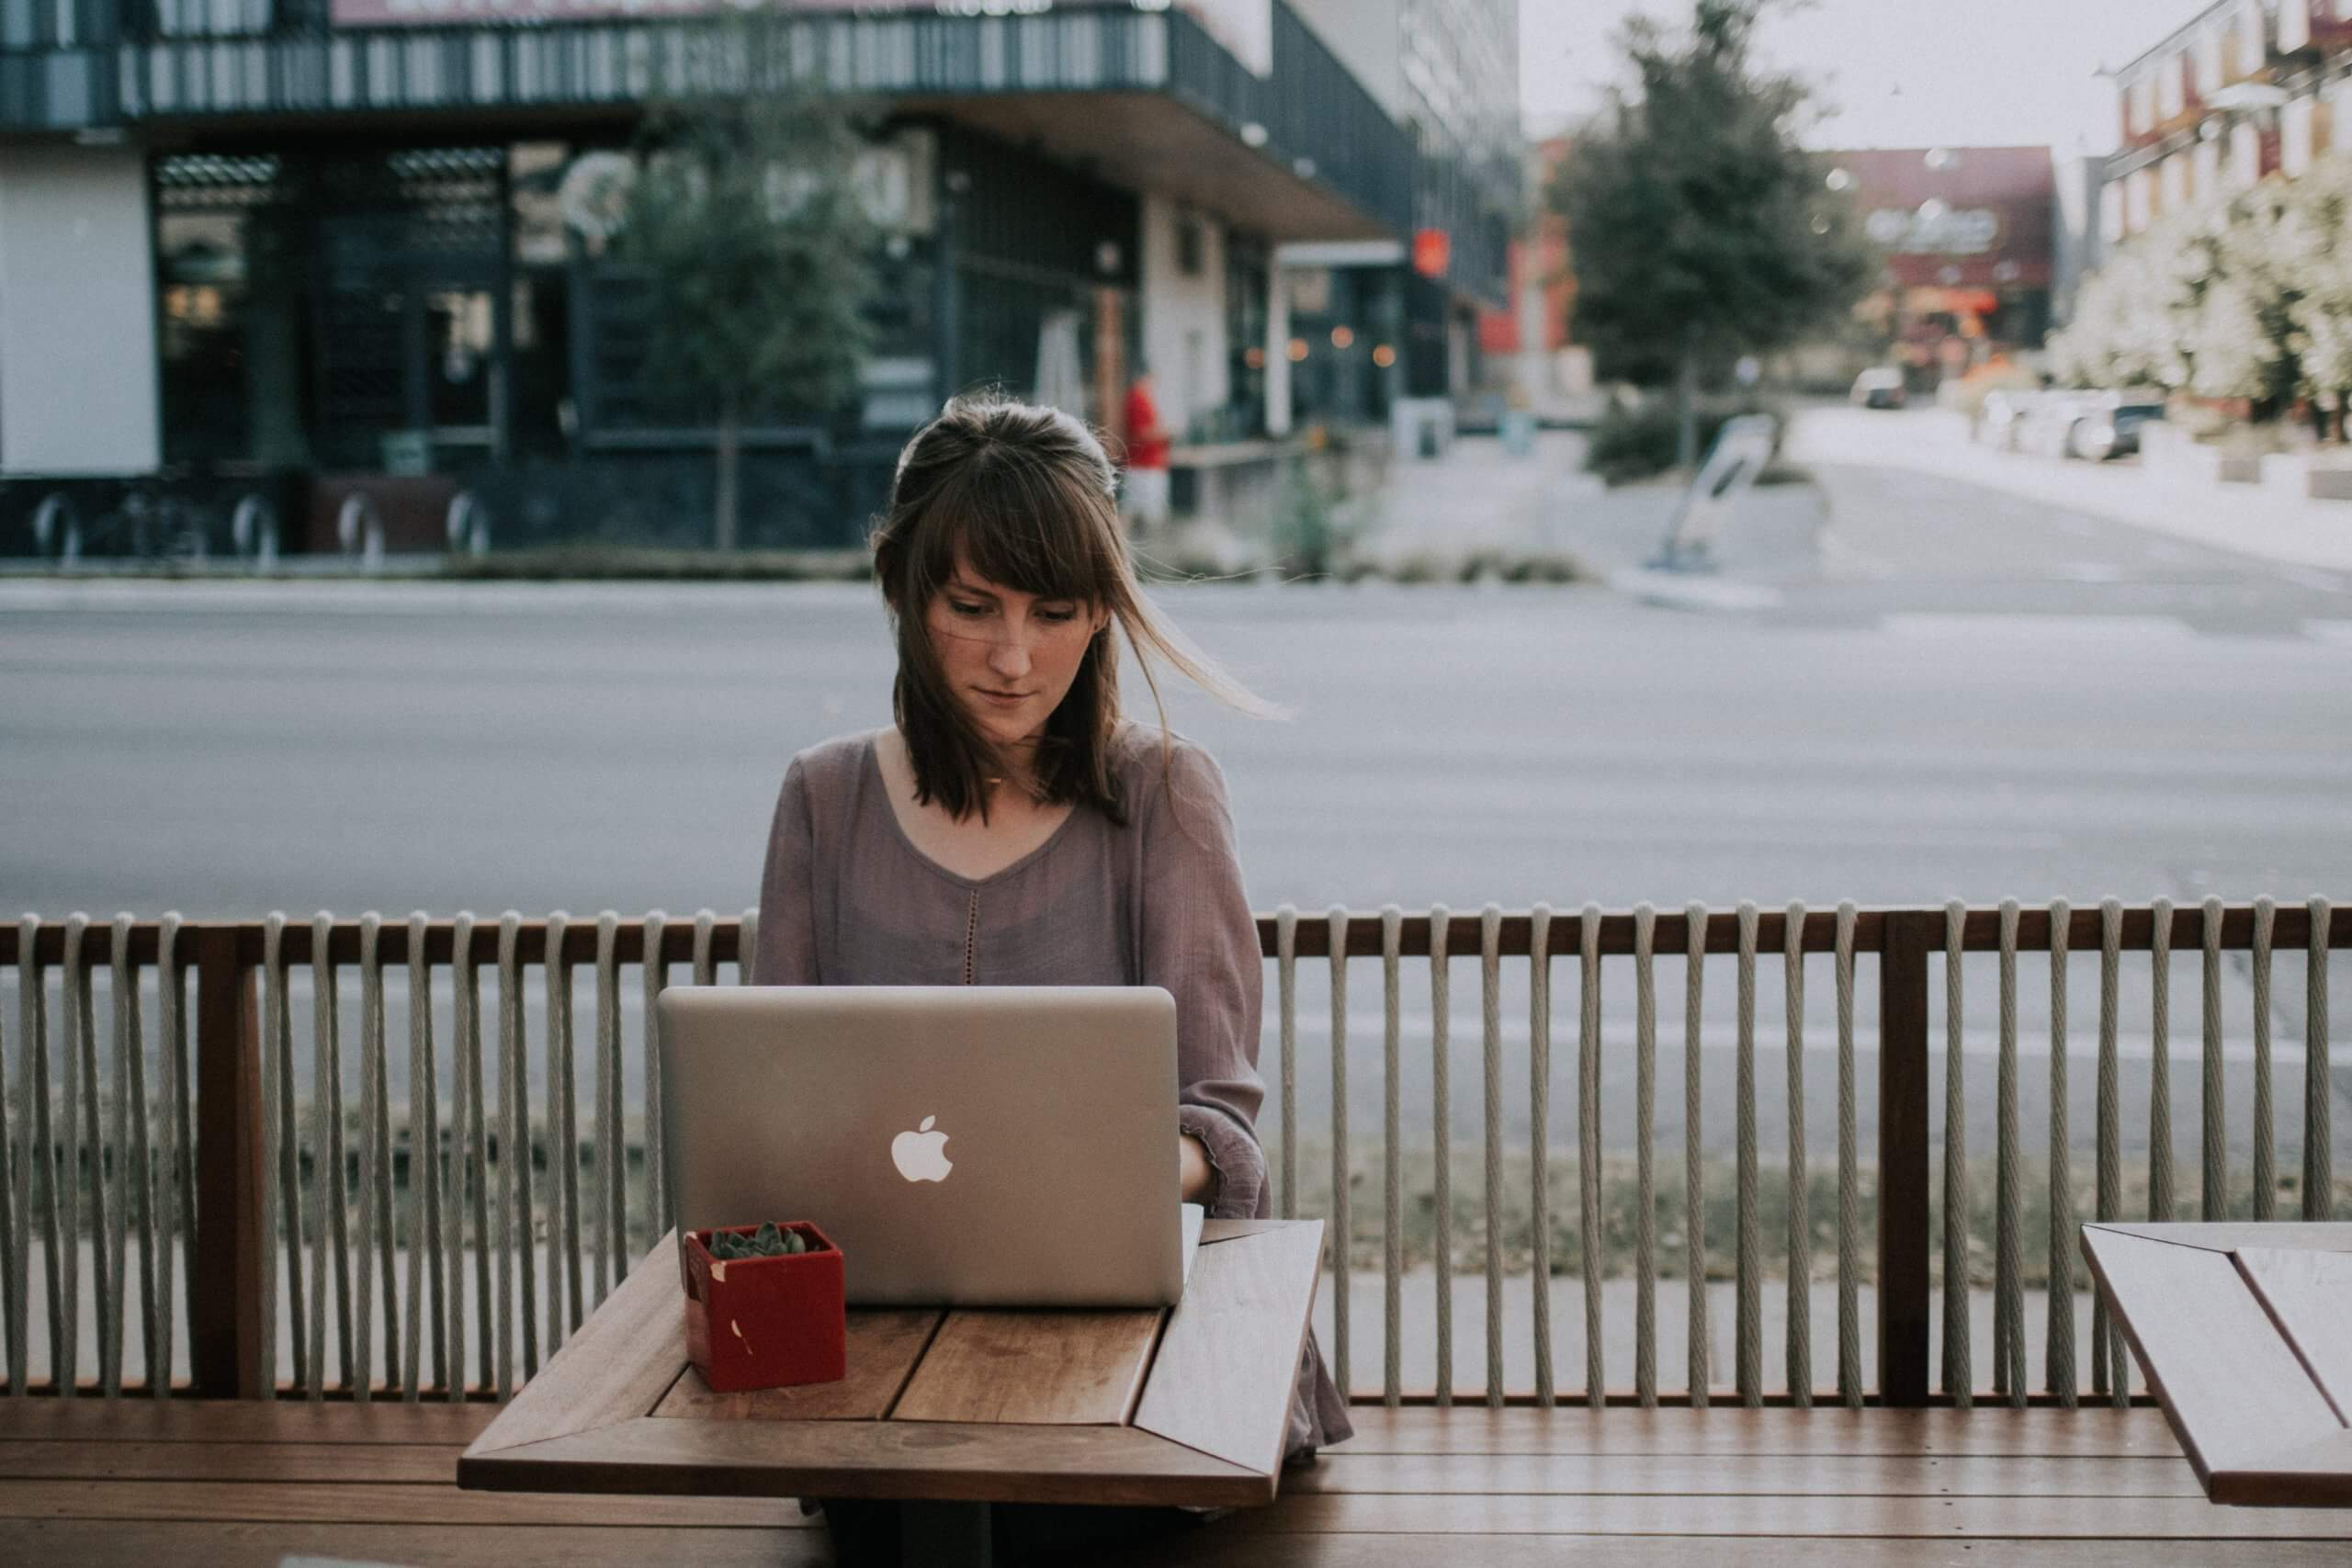 Brunette woman sitting at outdoor cafe, working at her laptop